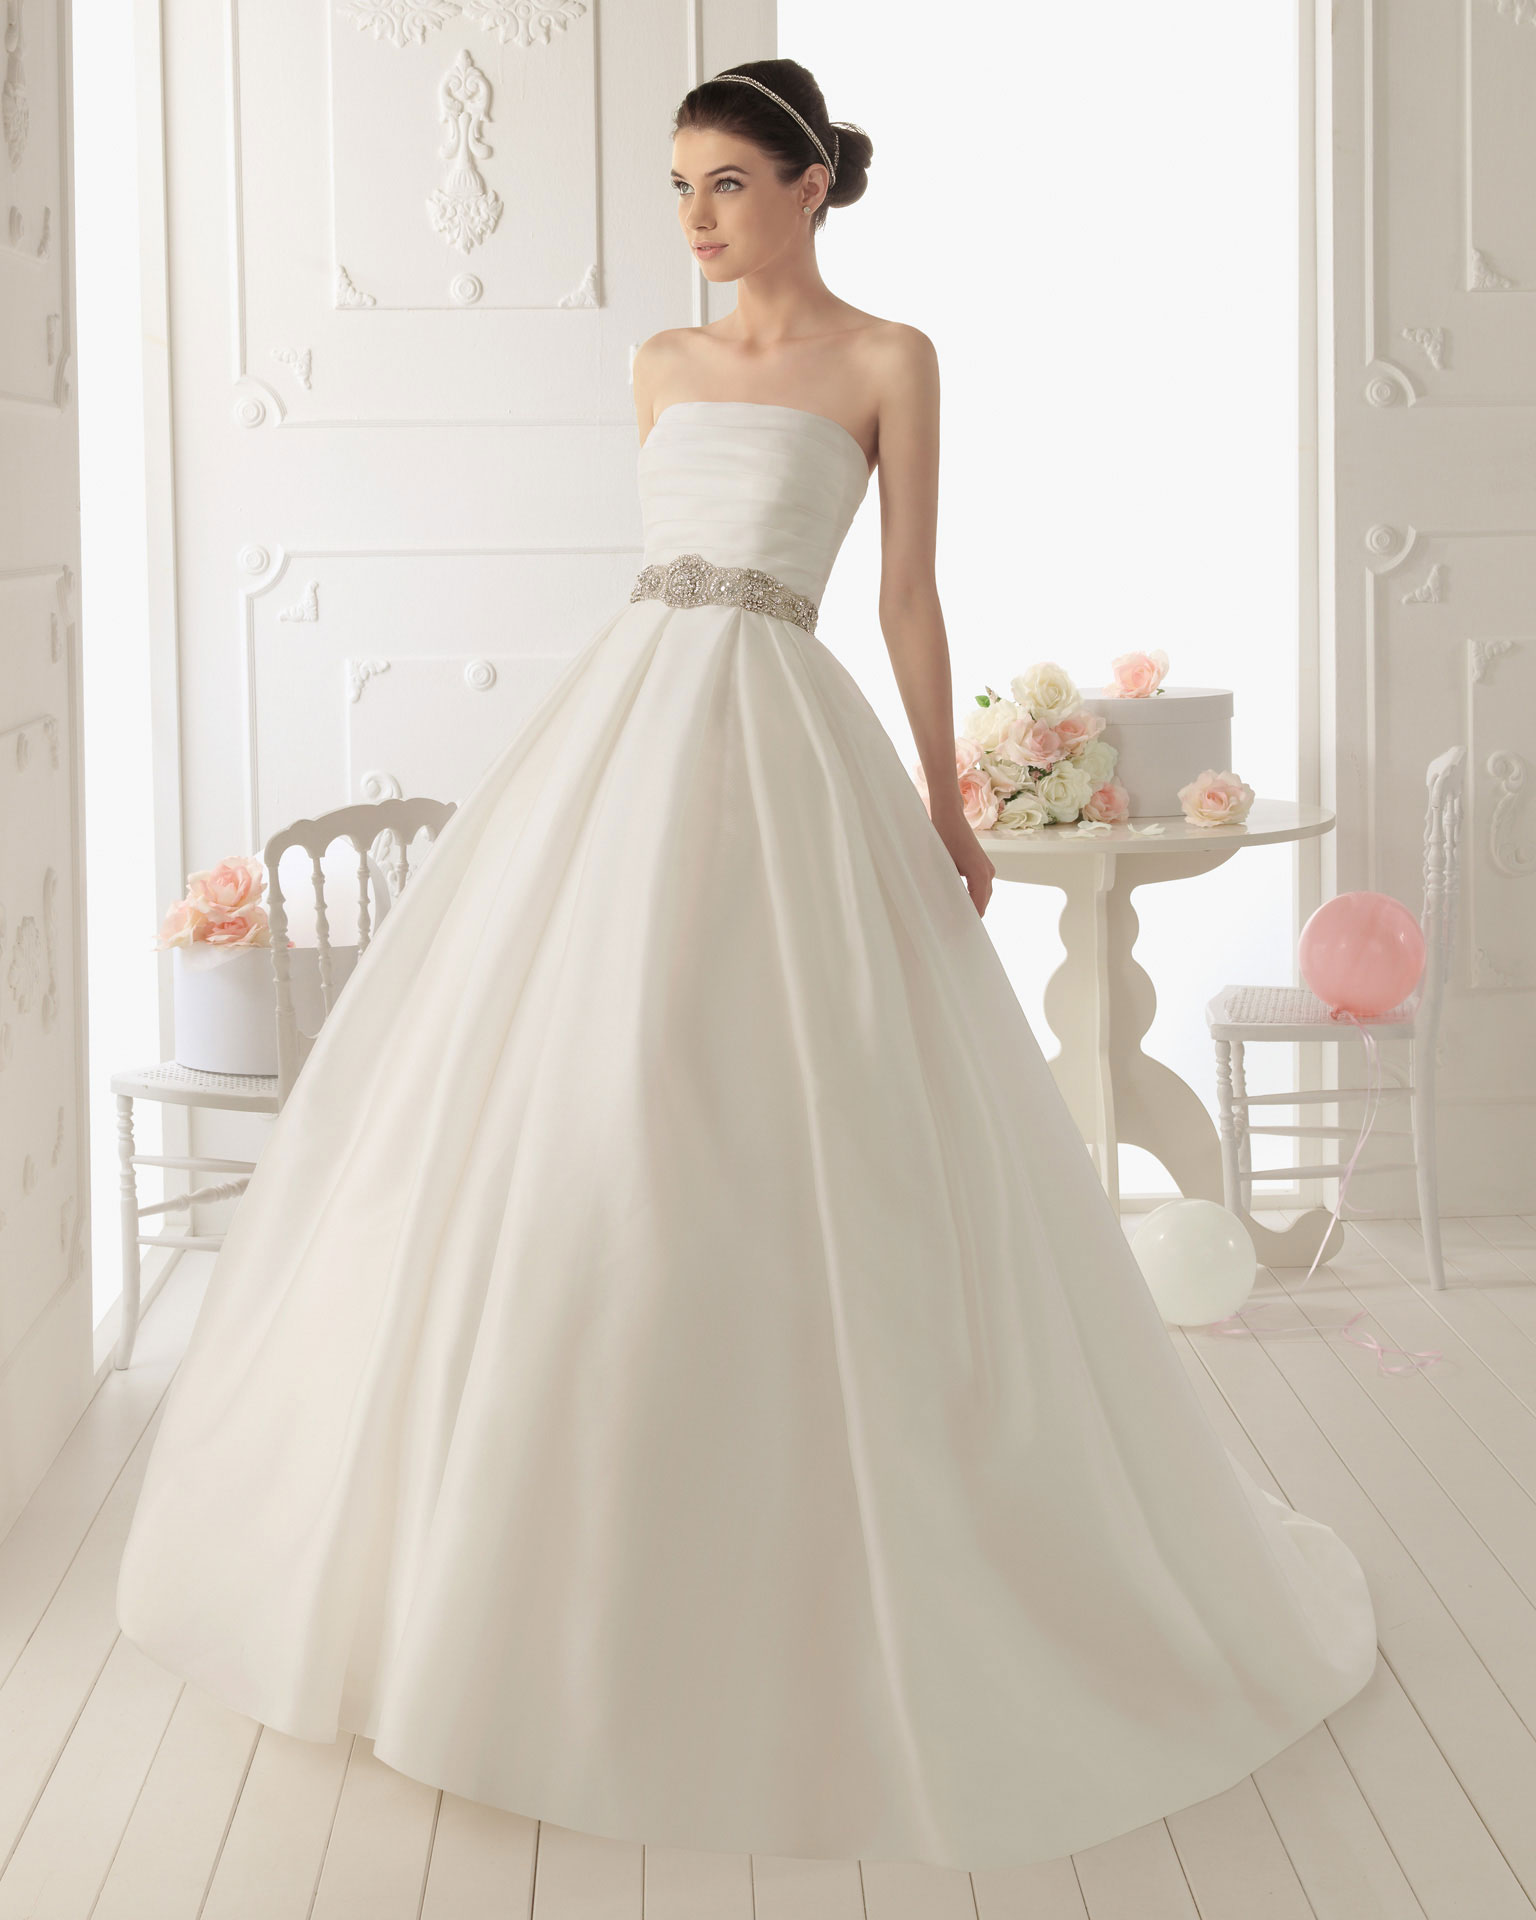 2013 wedding dress aire barcelona bridal gowns rima for Wedding dresses in barcelona spain